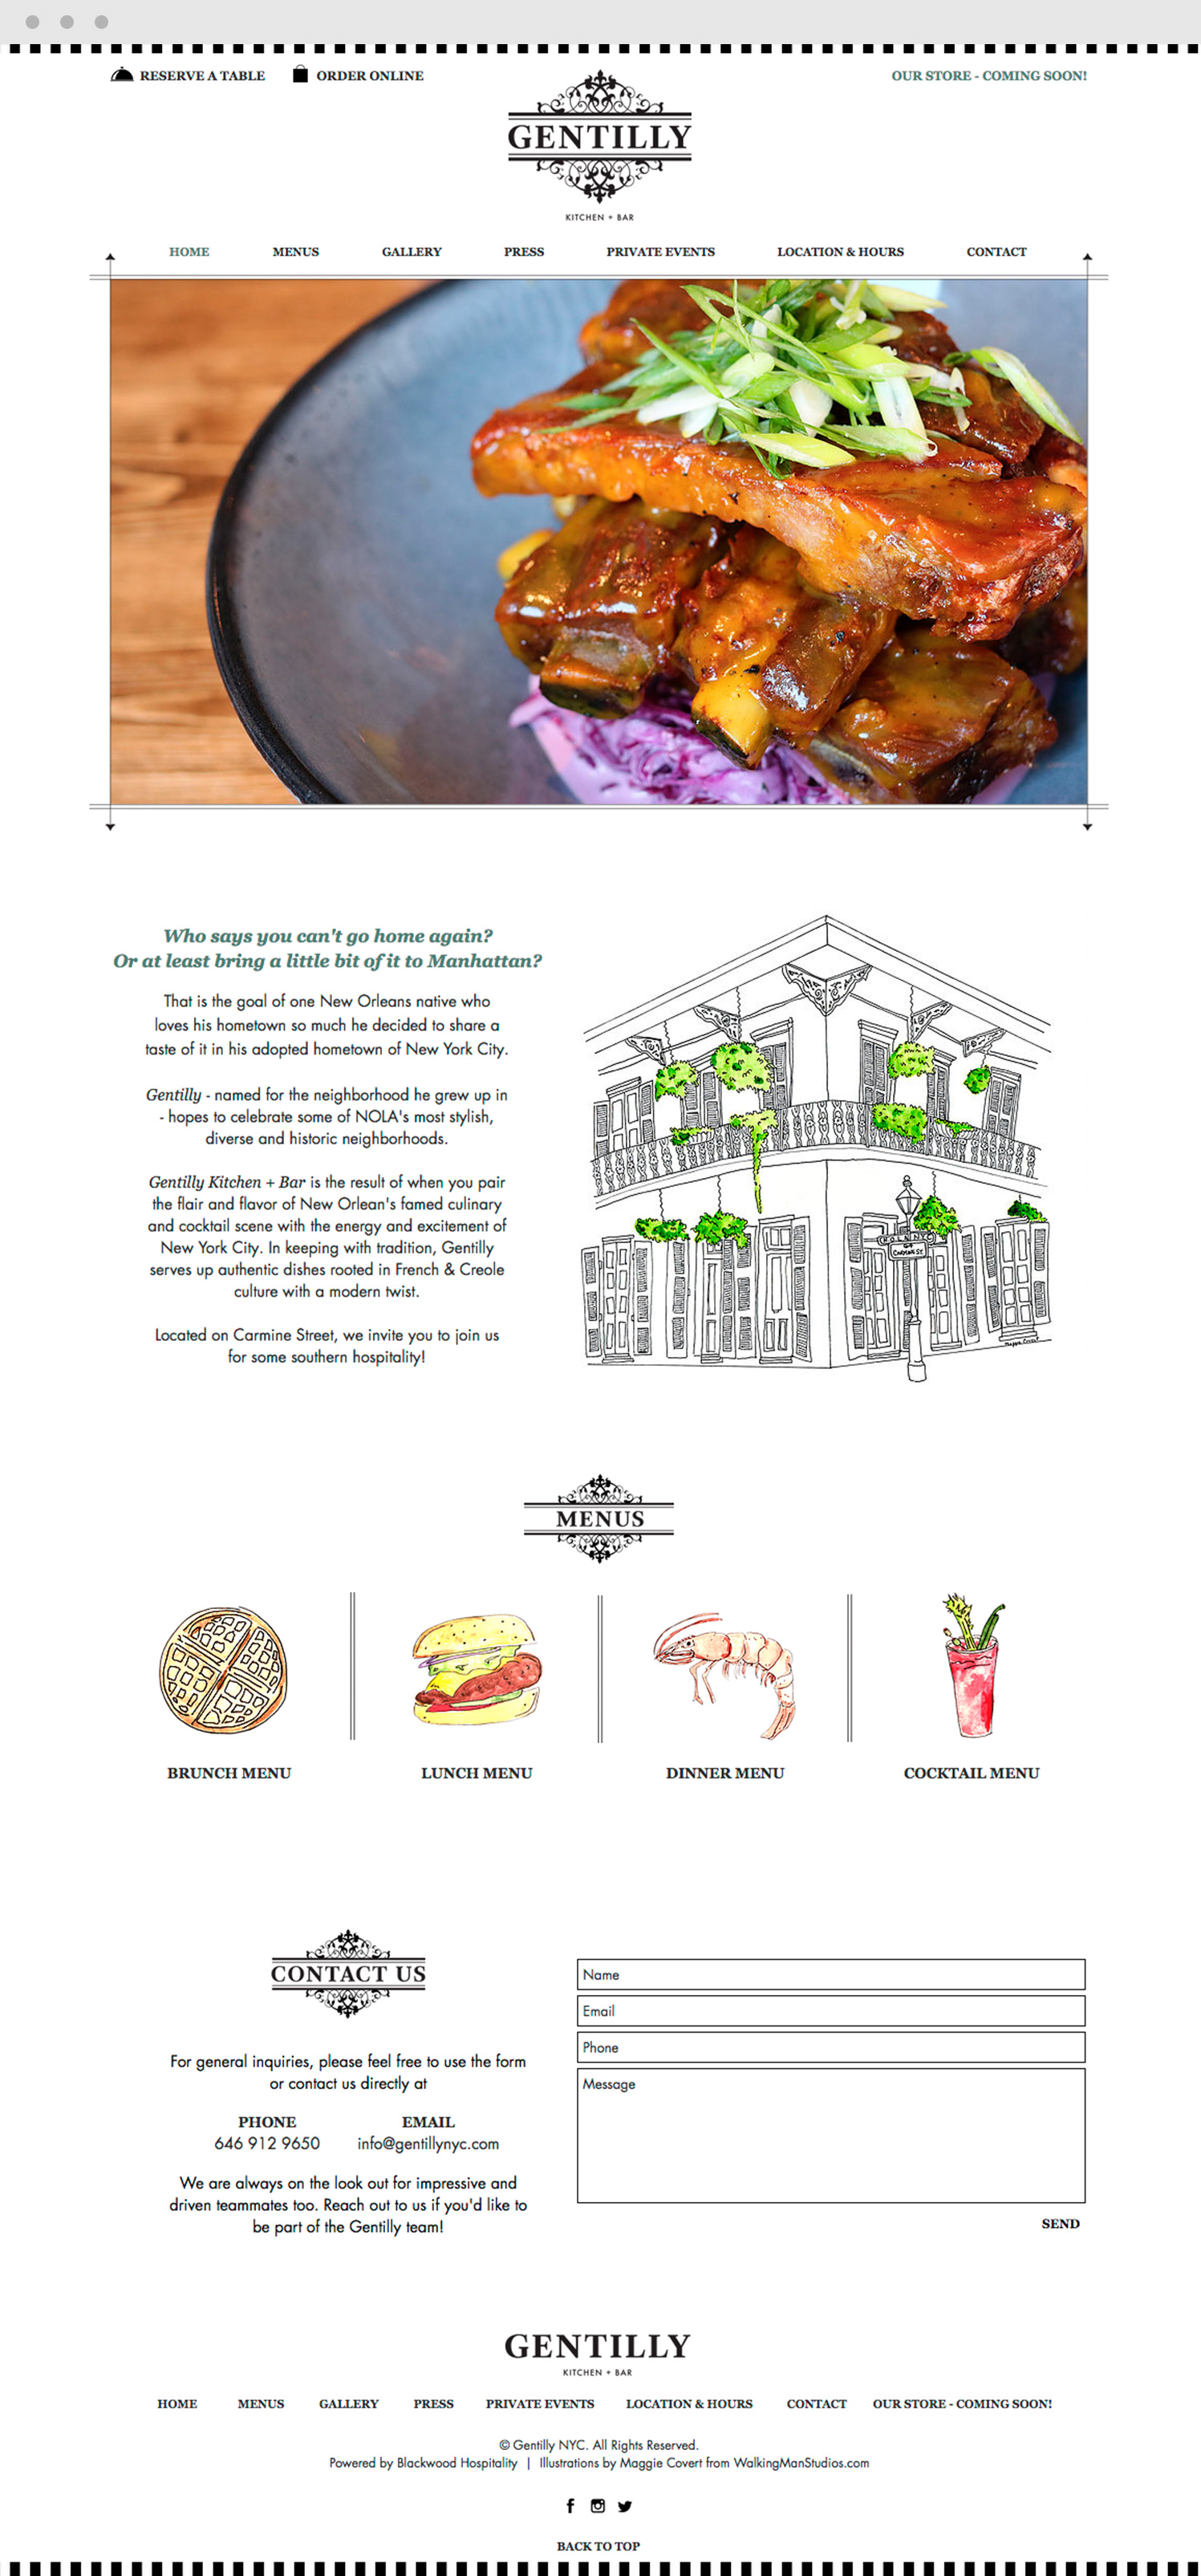 Gentilly Restaurant Website Design